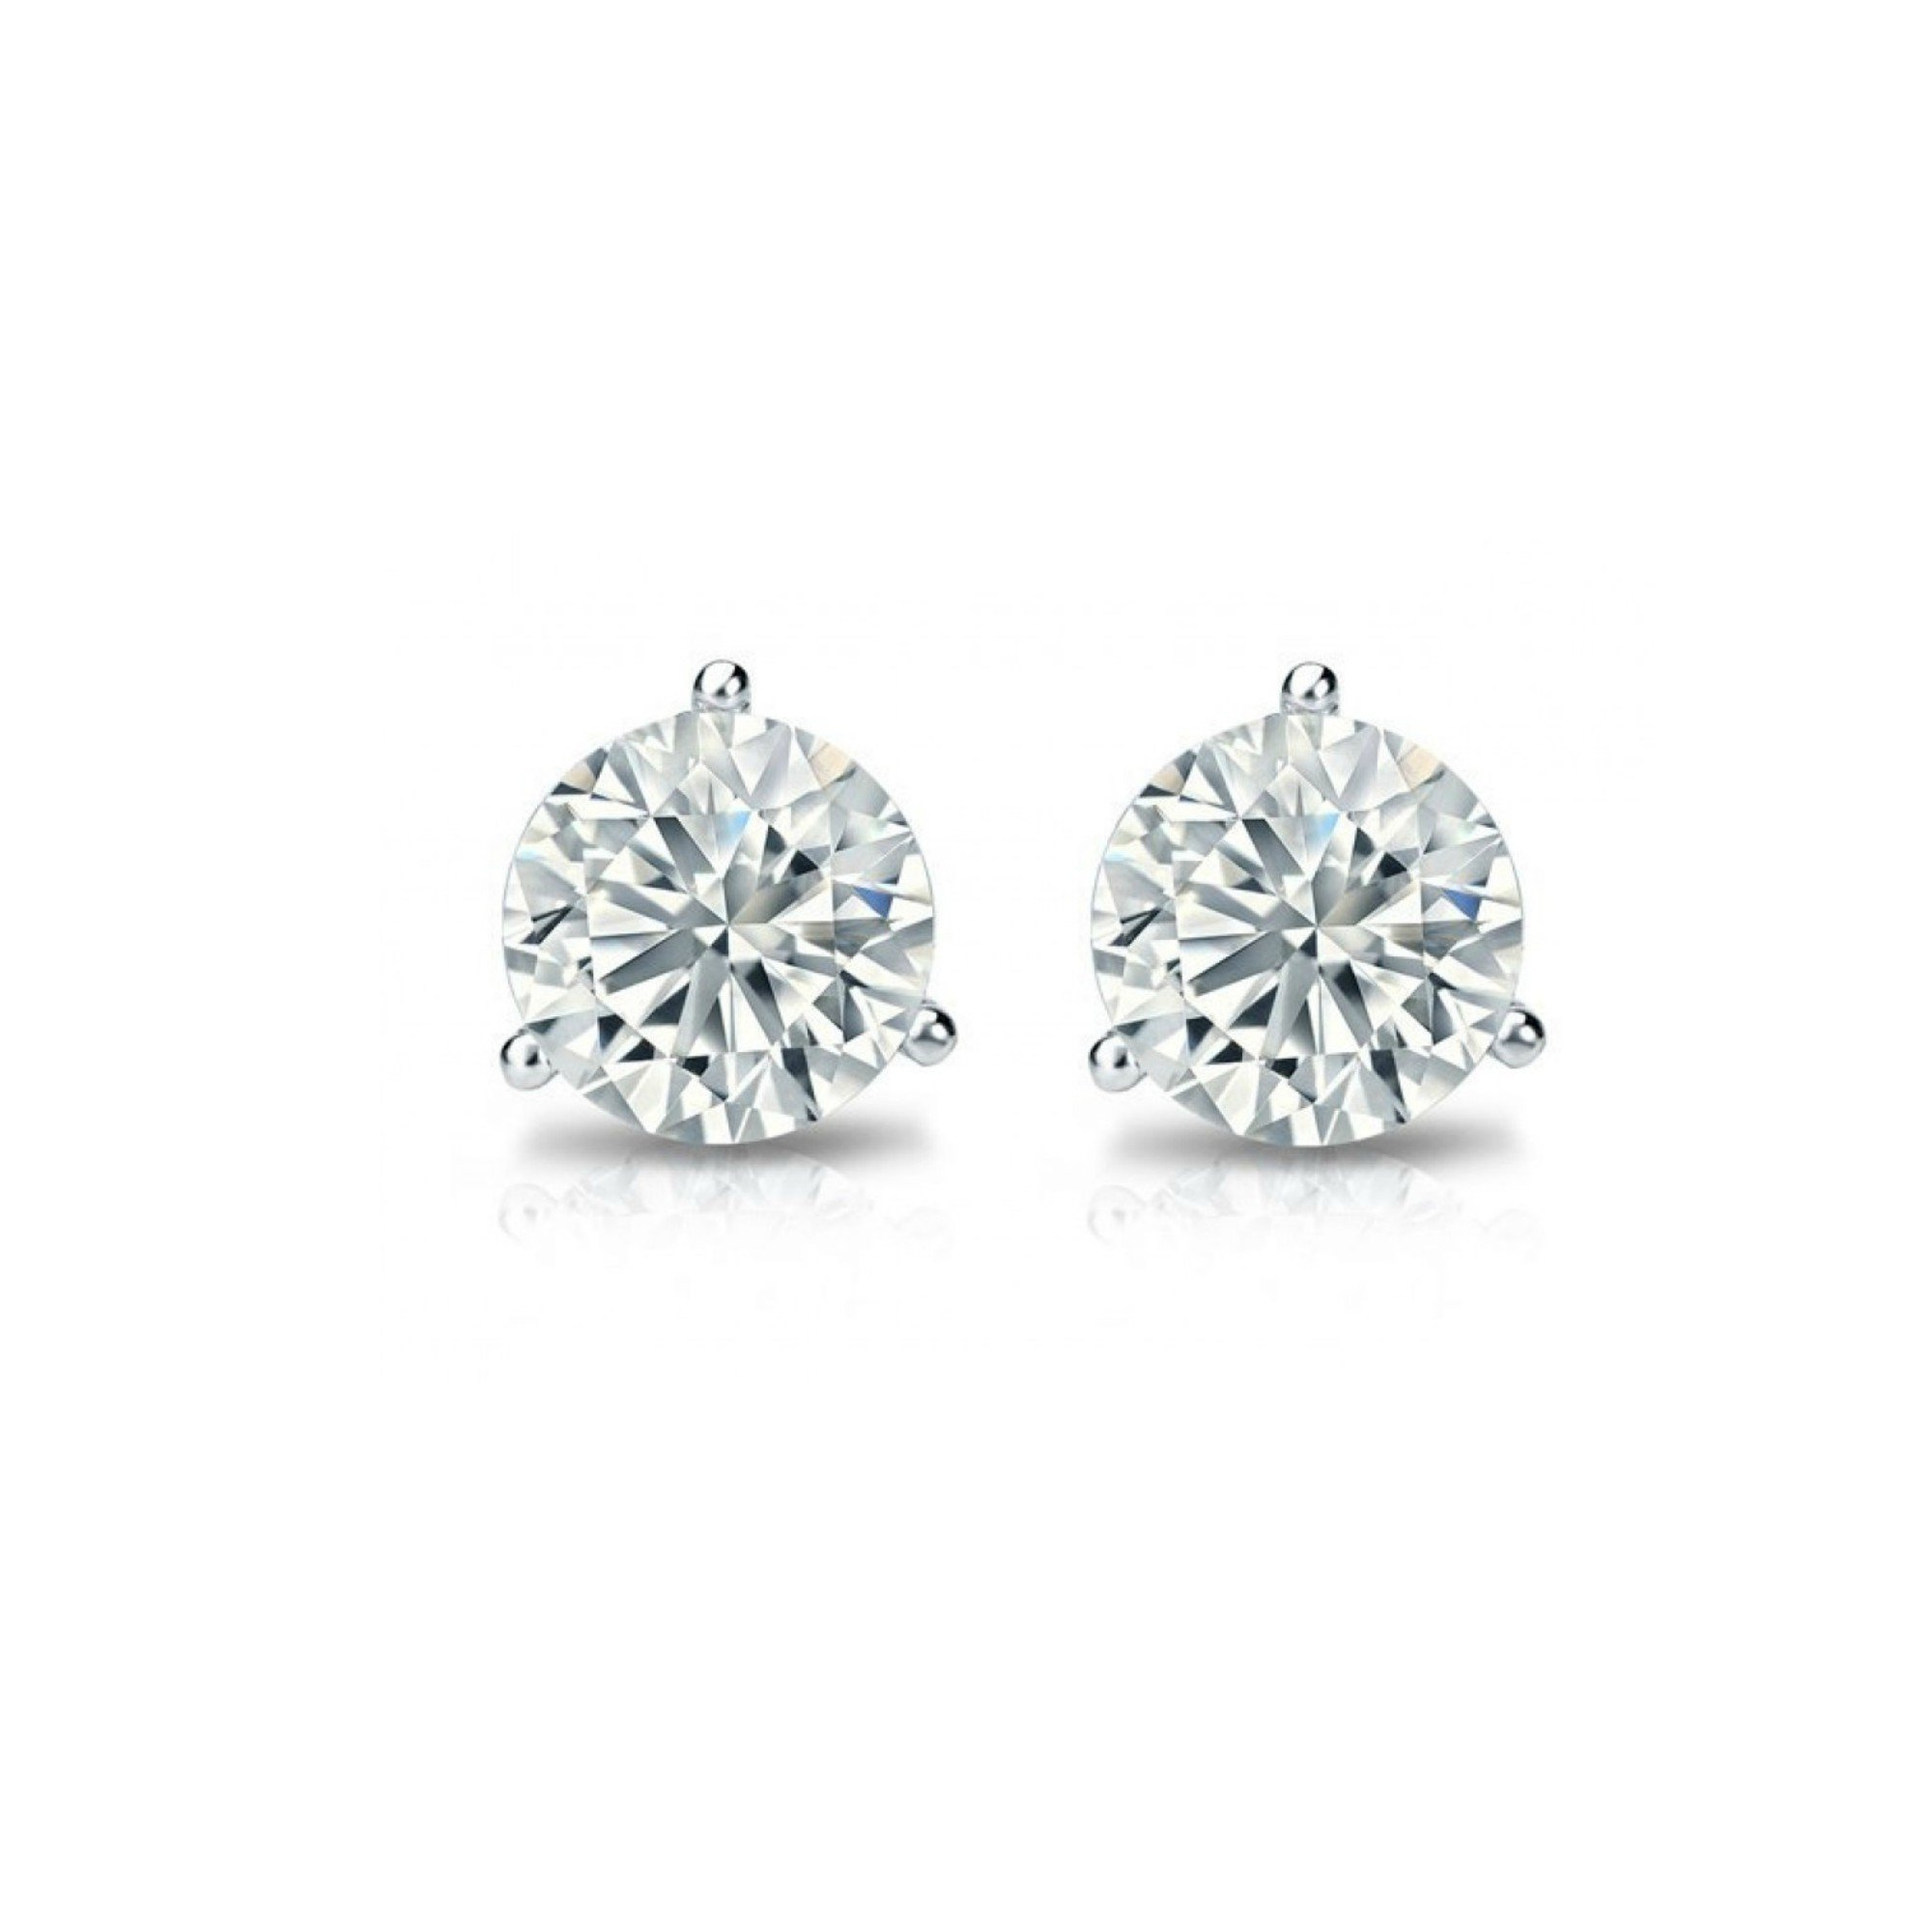 Solitaire Real 14k White Gold Round Diamond Stud Earrings (Promo)(Color- KLMN,Clarity I3/I4)Martini Setting(0.10-0.35 Carat) (0.35)